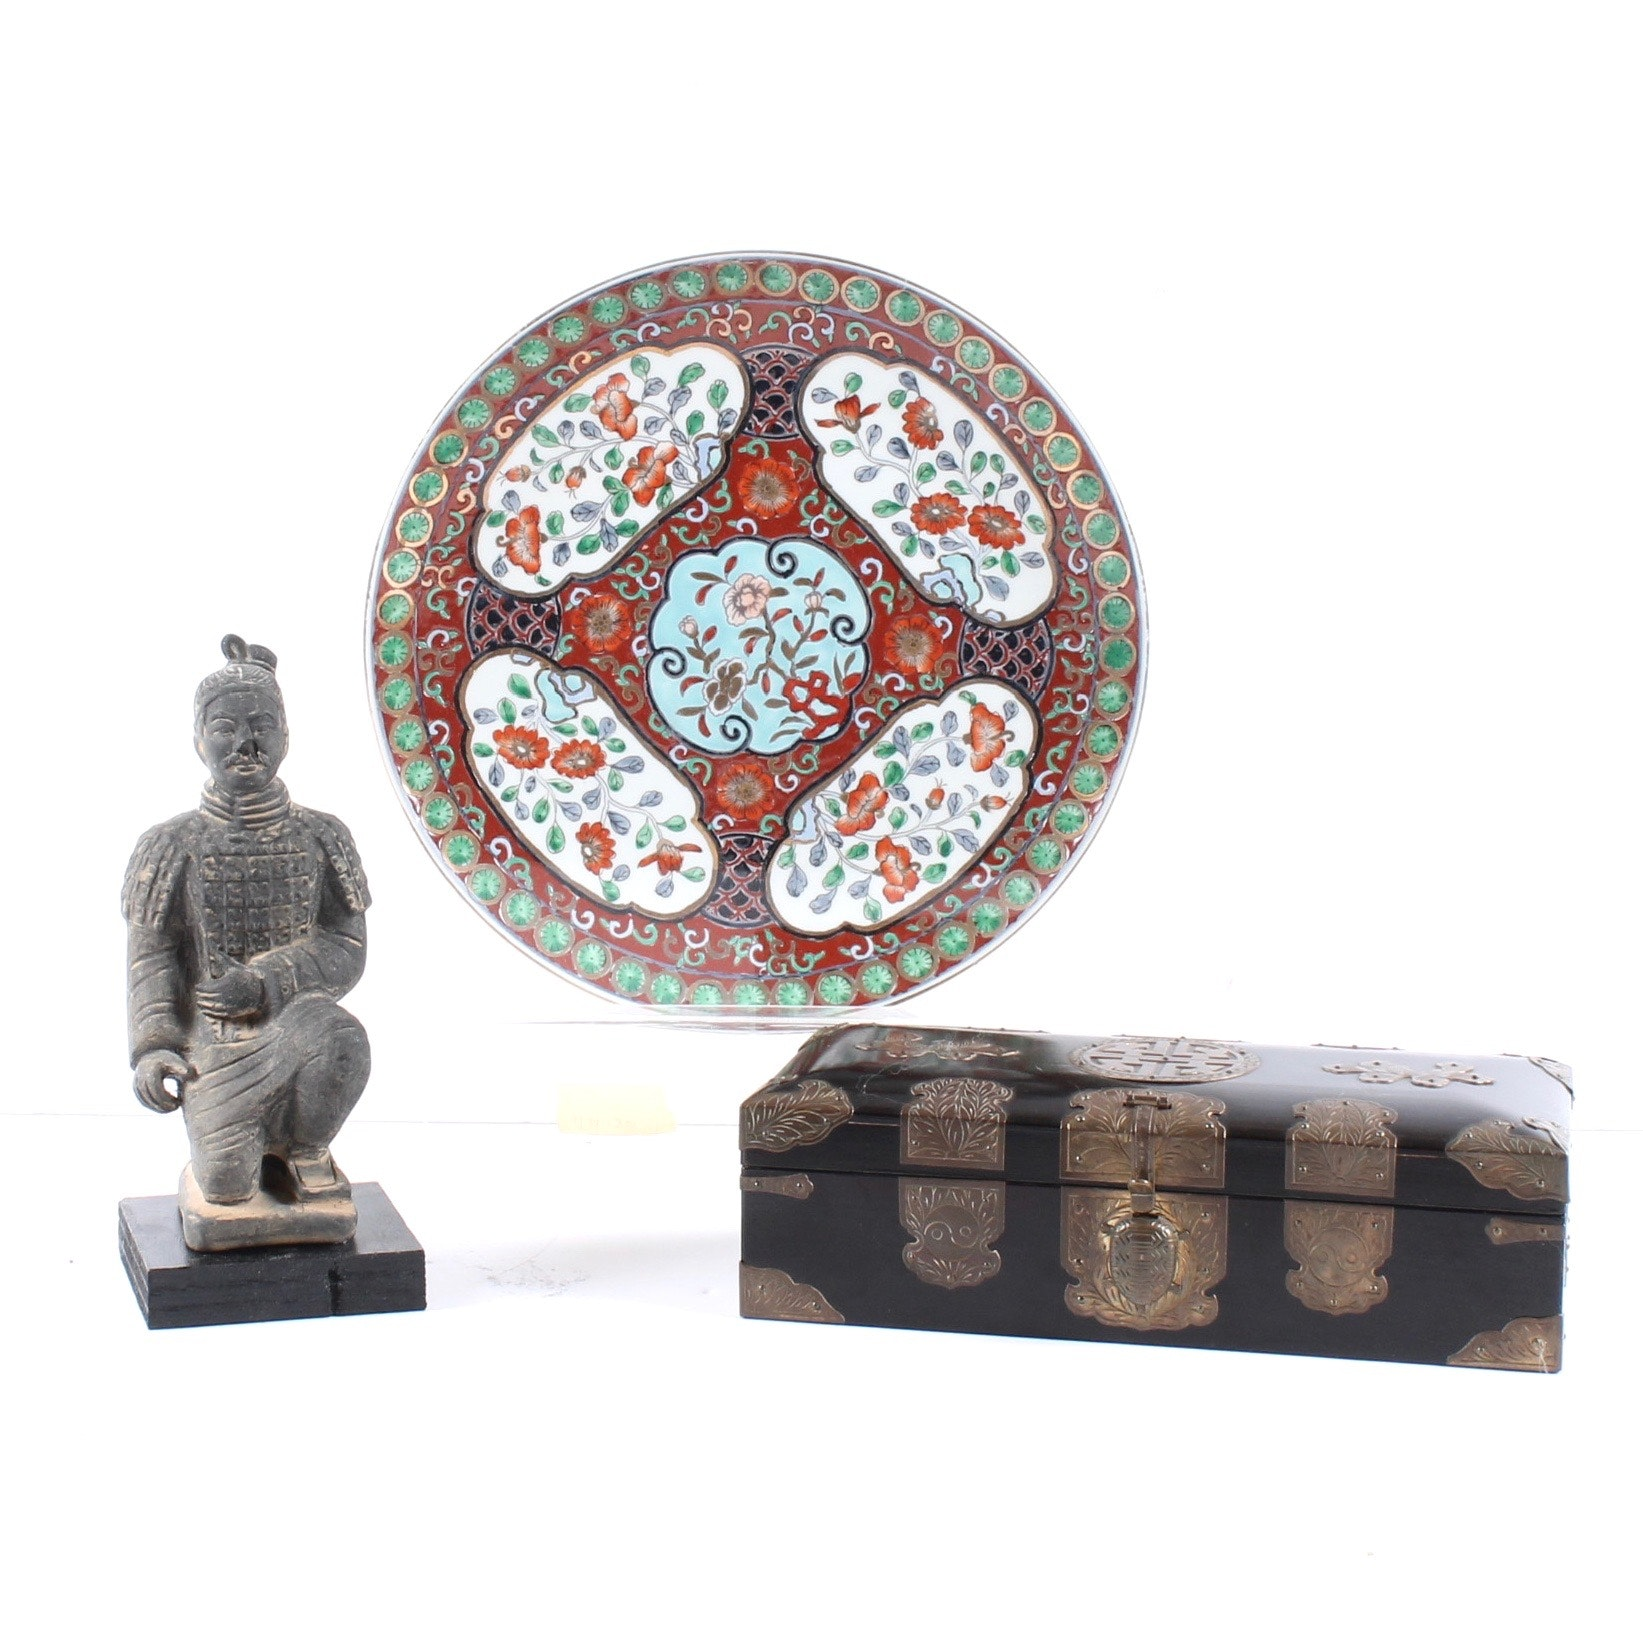 Chinoiserie Tea Caddy, Ceramic Plate, and Reproduction Terracotta Soldier